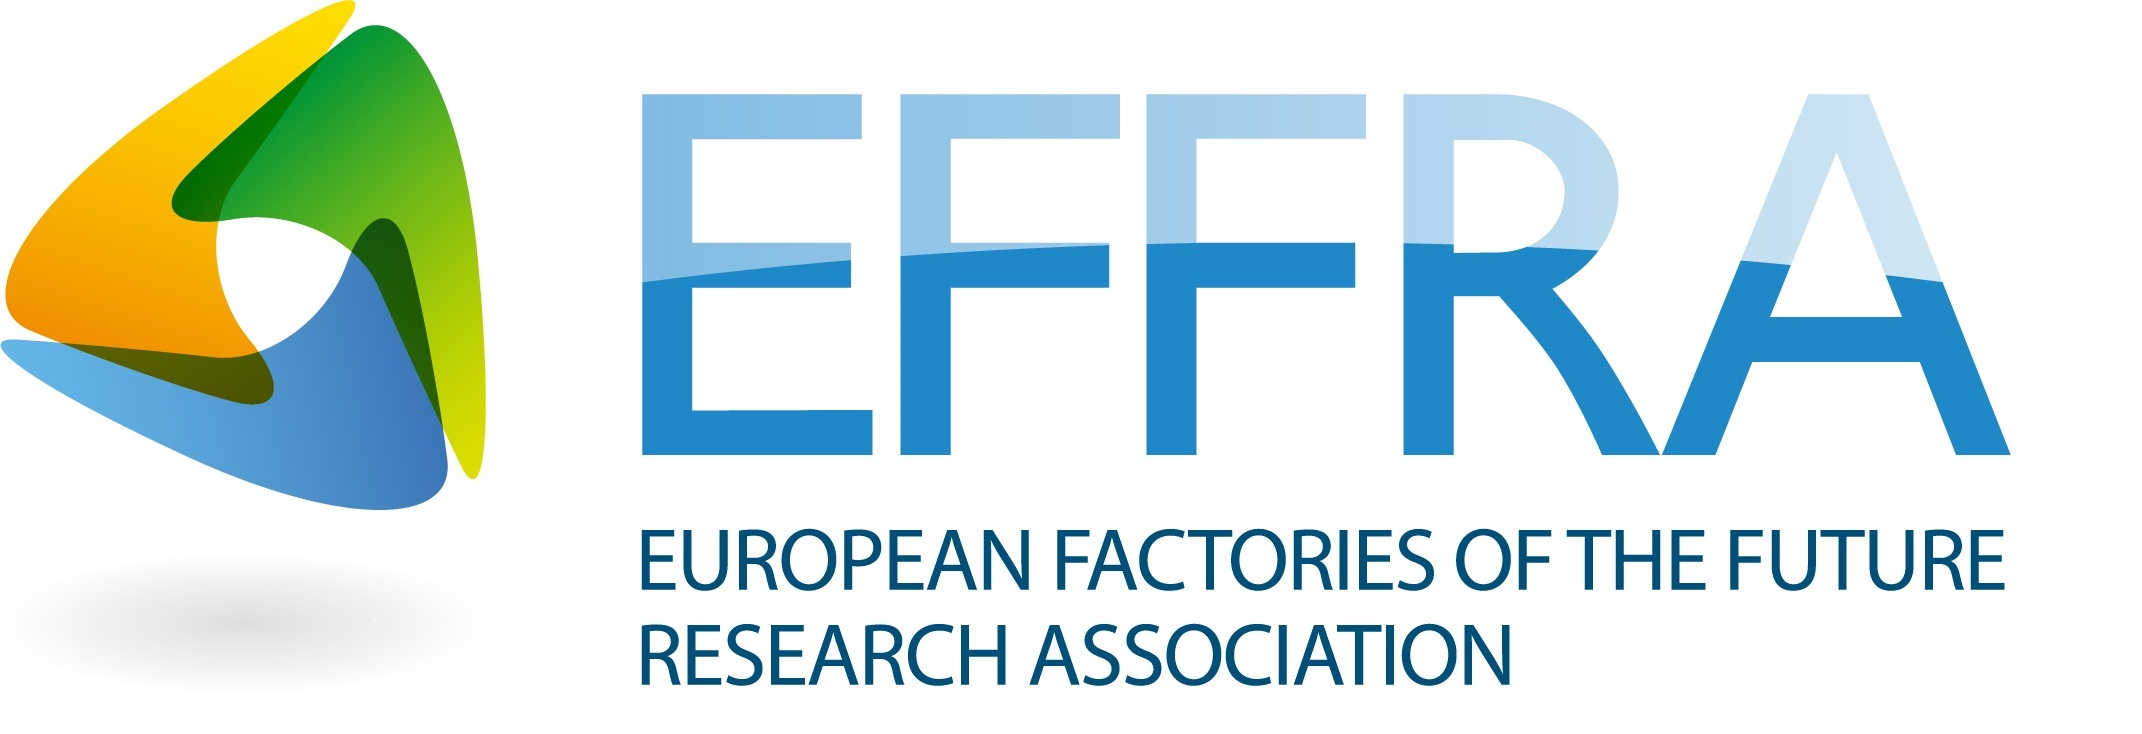 The European Factories of the Future Research Association